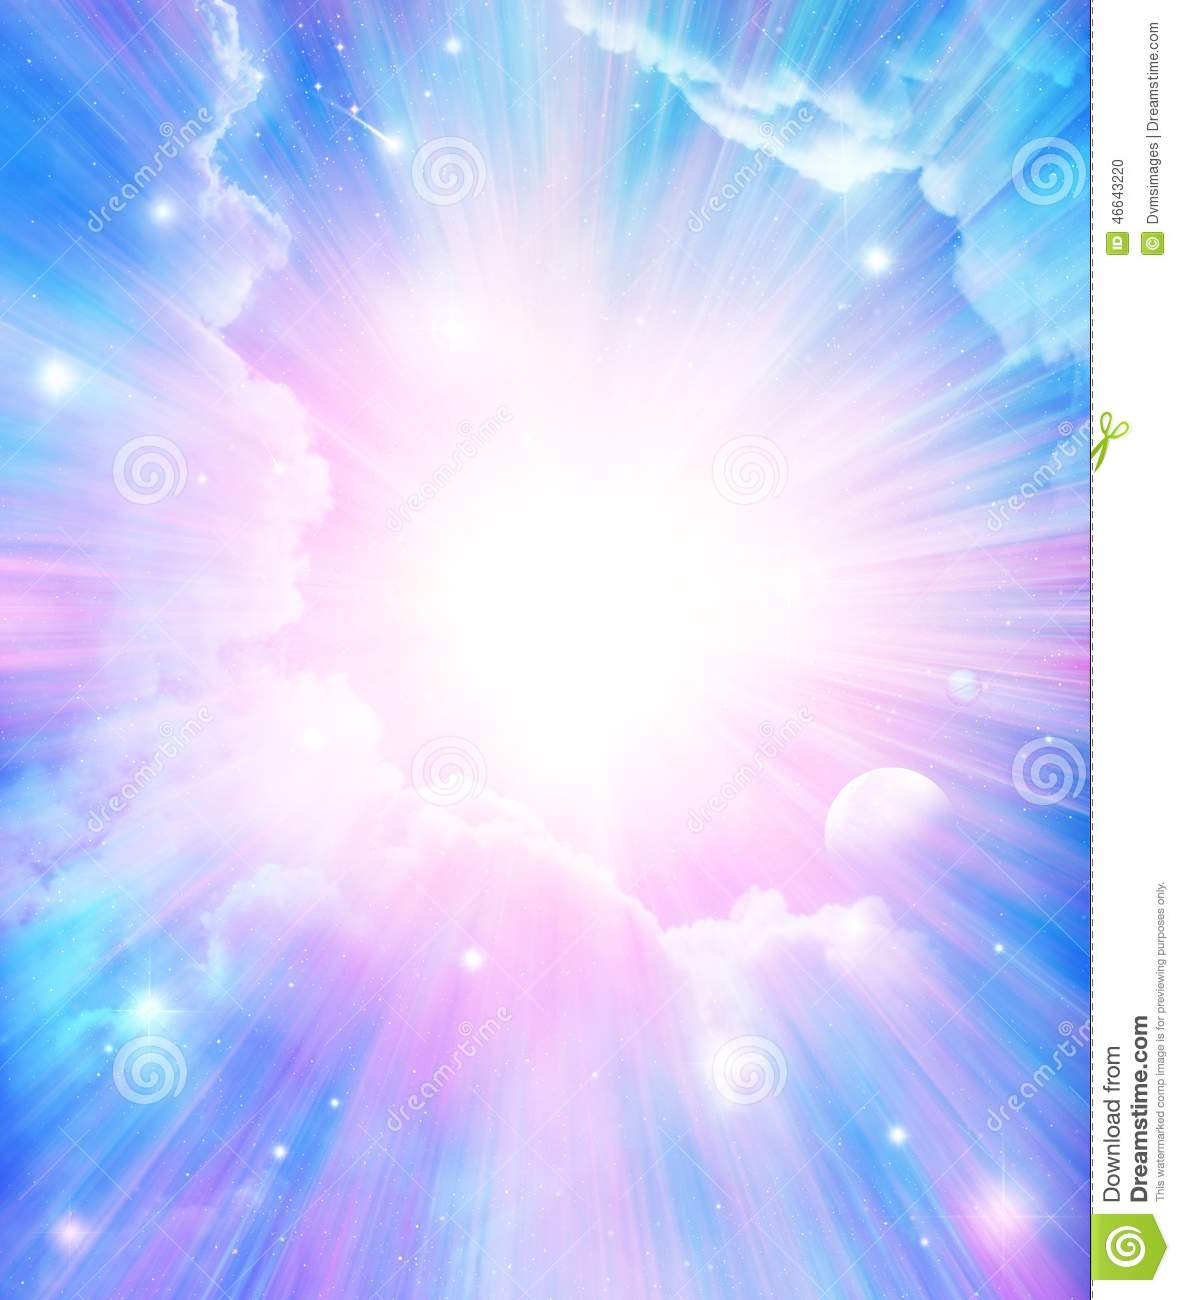 mystical background rays stock illustration image 46643220 planet clipart free plants clipart